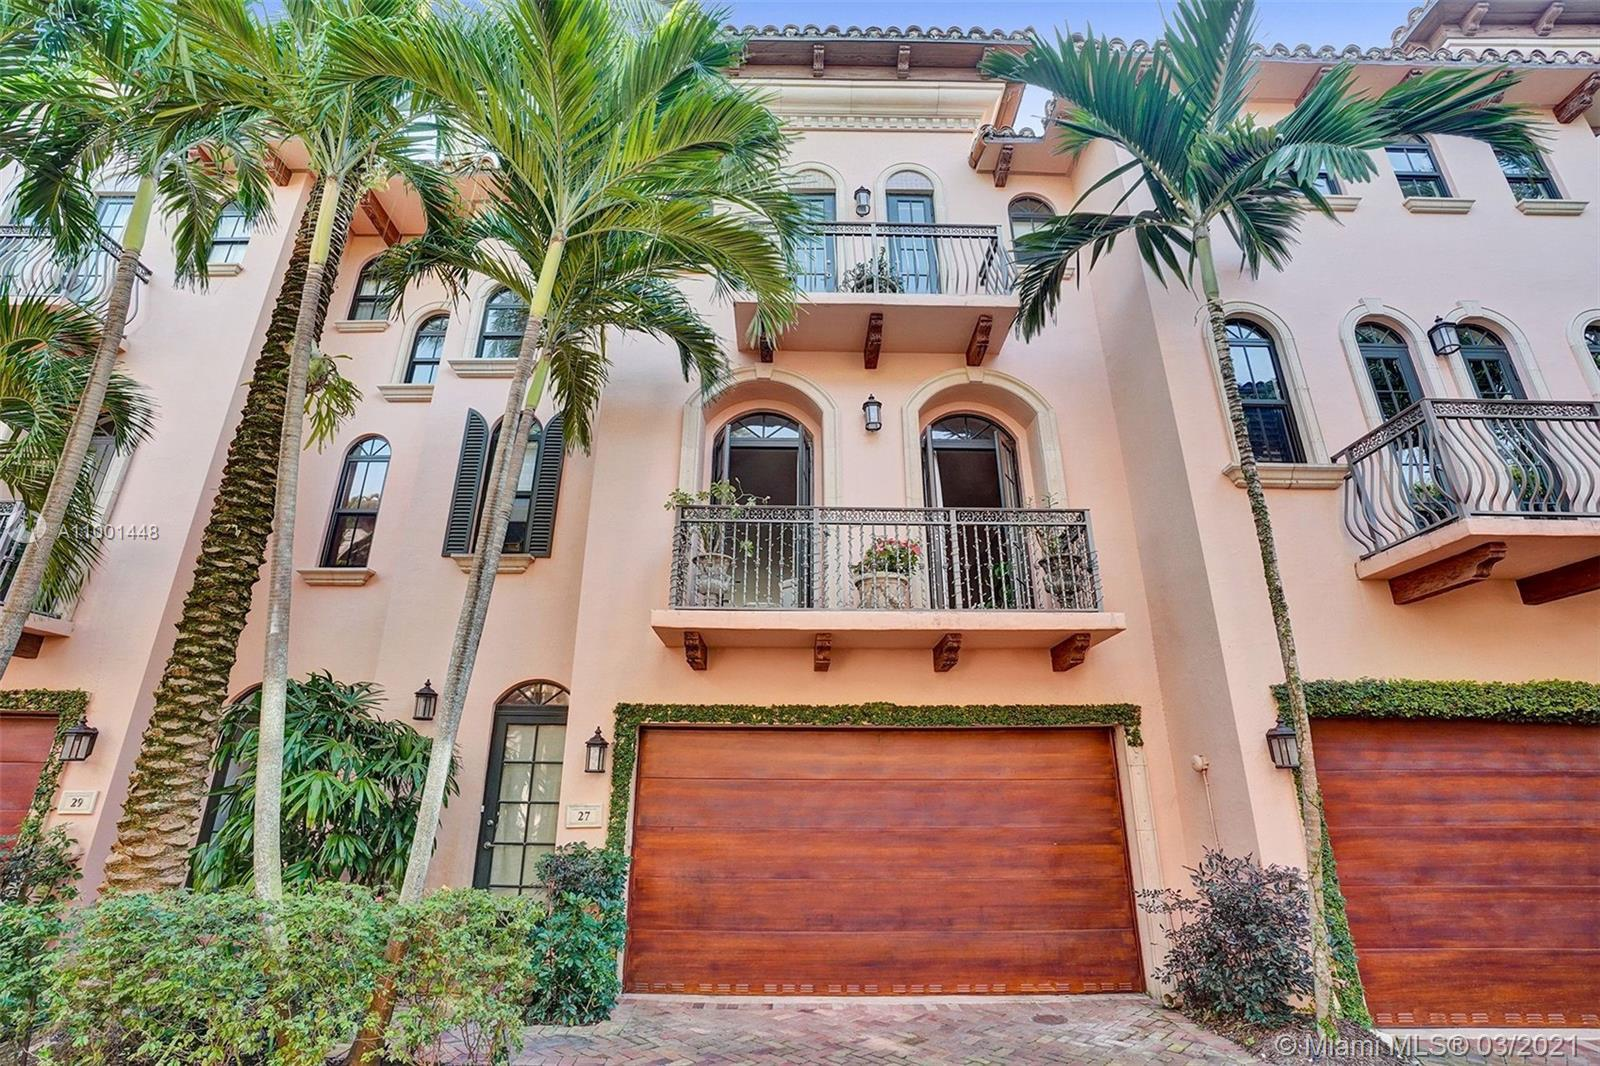 YOU HAVE TO SEE THIS HOUSE IN PERSON!! Stunning and exquisite newer construction Mediterranean townh